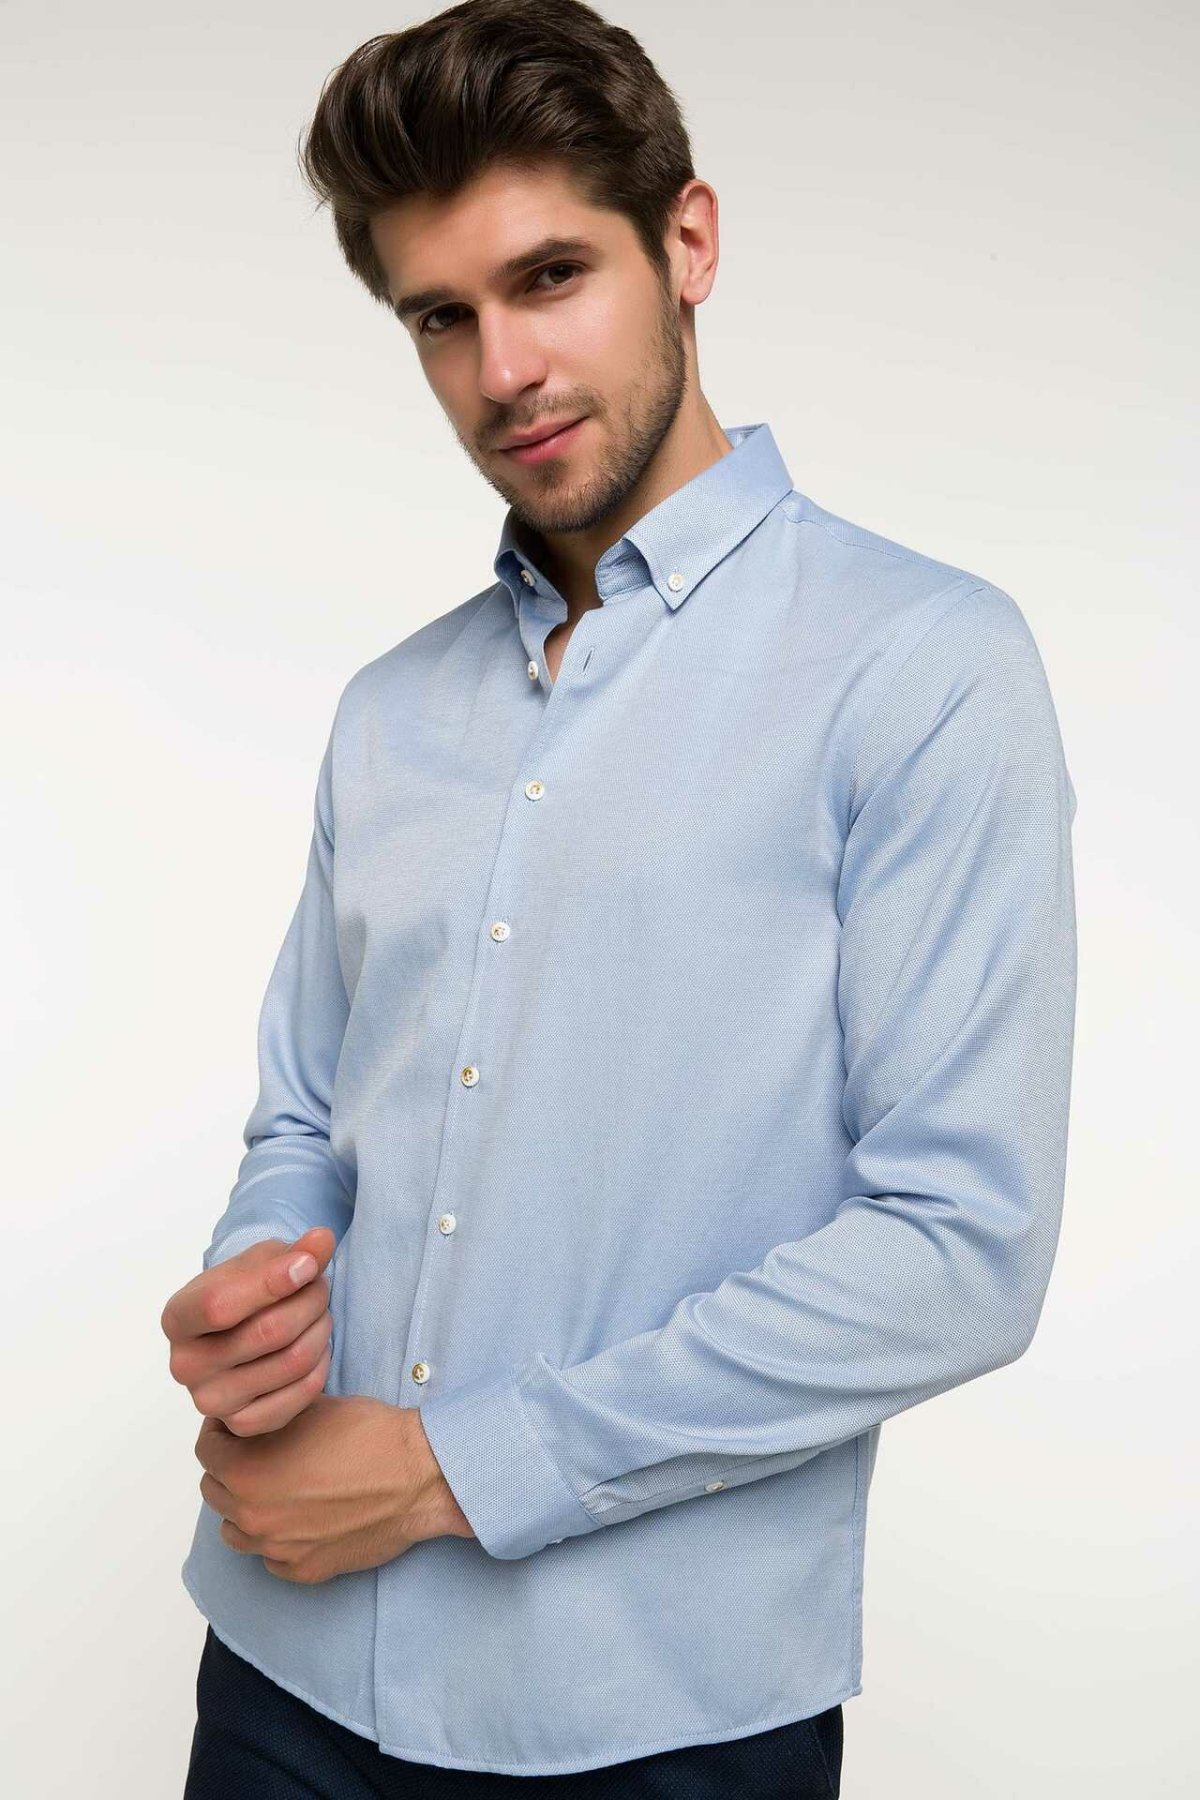 DeFacto Men Summer Smart Casual Shirts Men Light Blue Business Shirts Male Long Sleeve Top Shirt-G9238AZ18SM